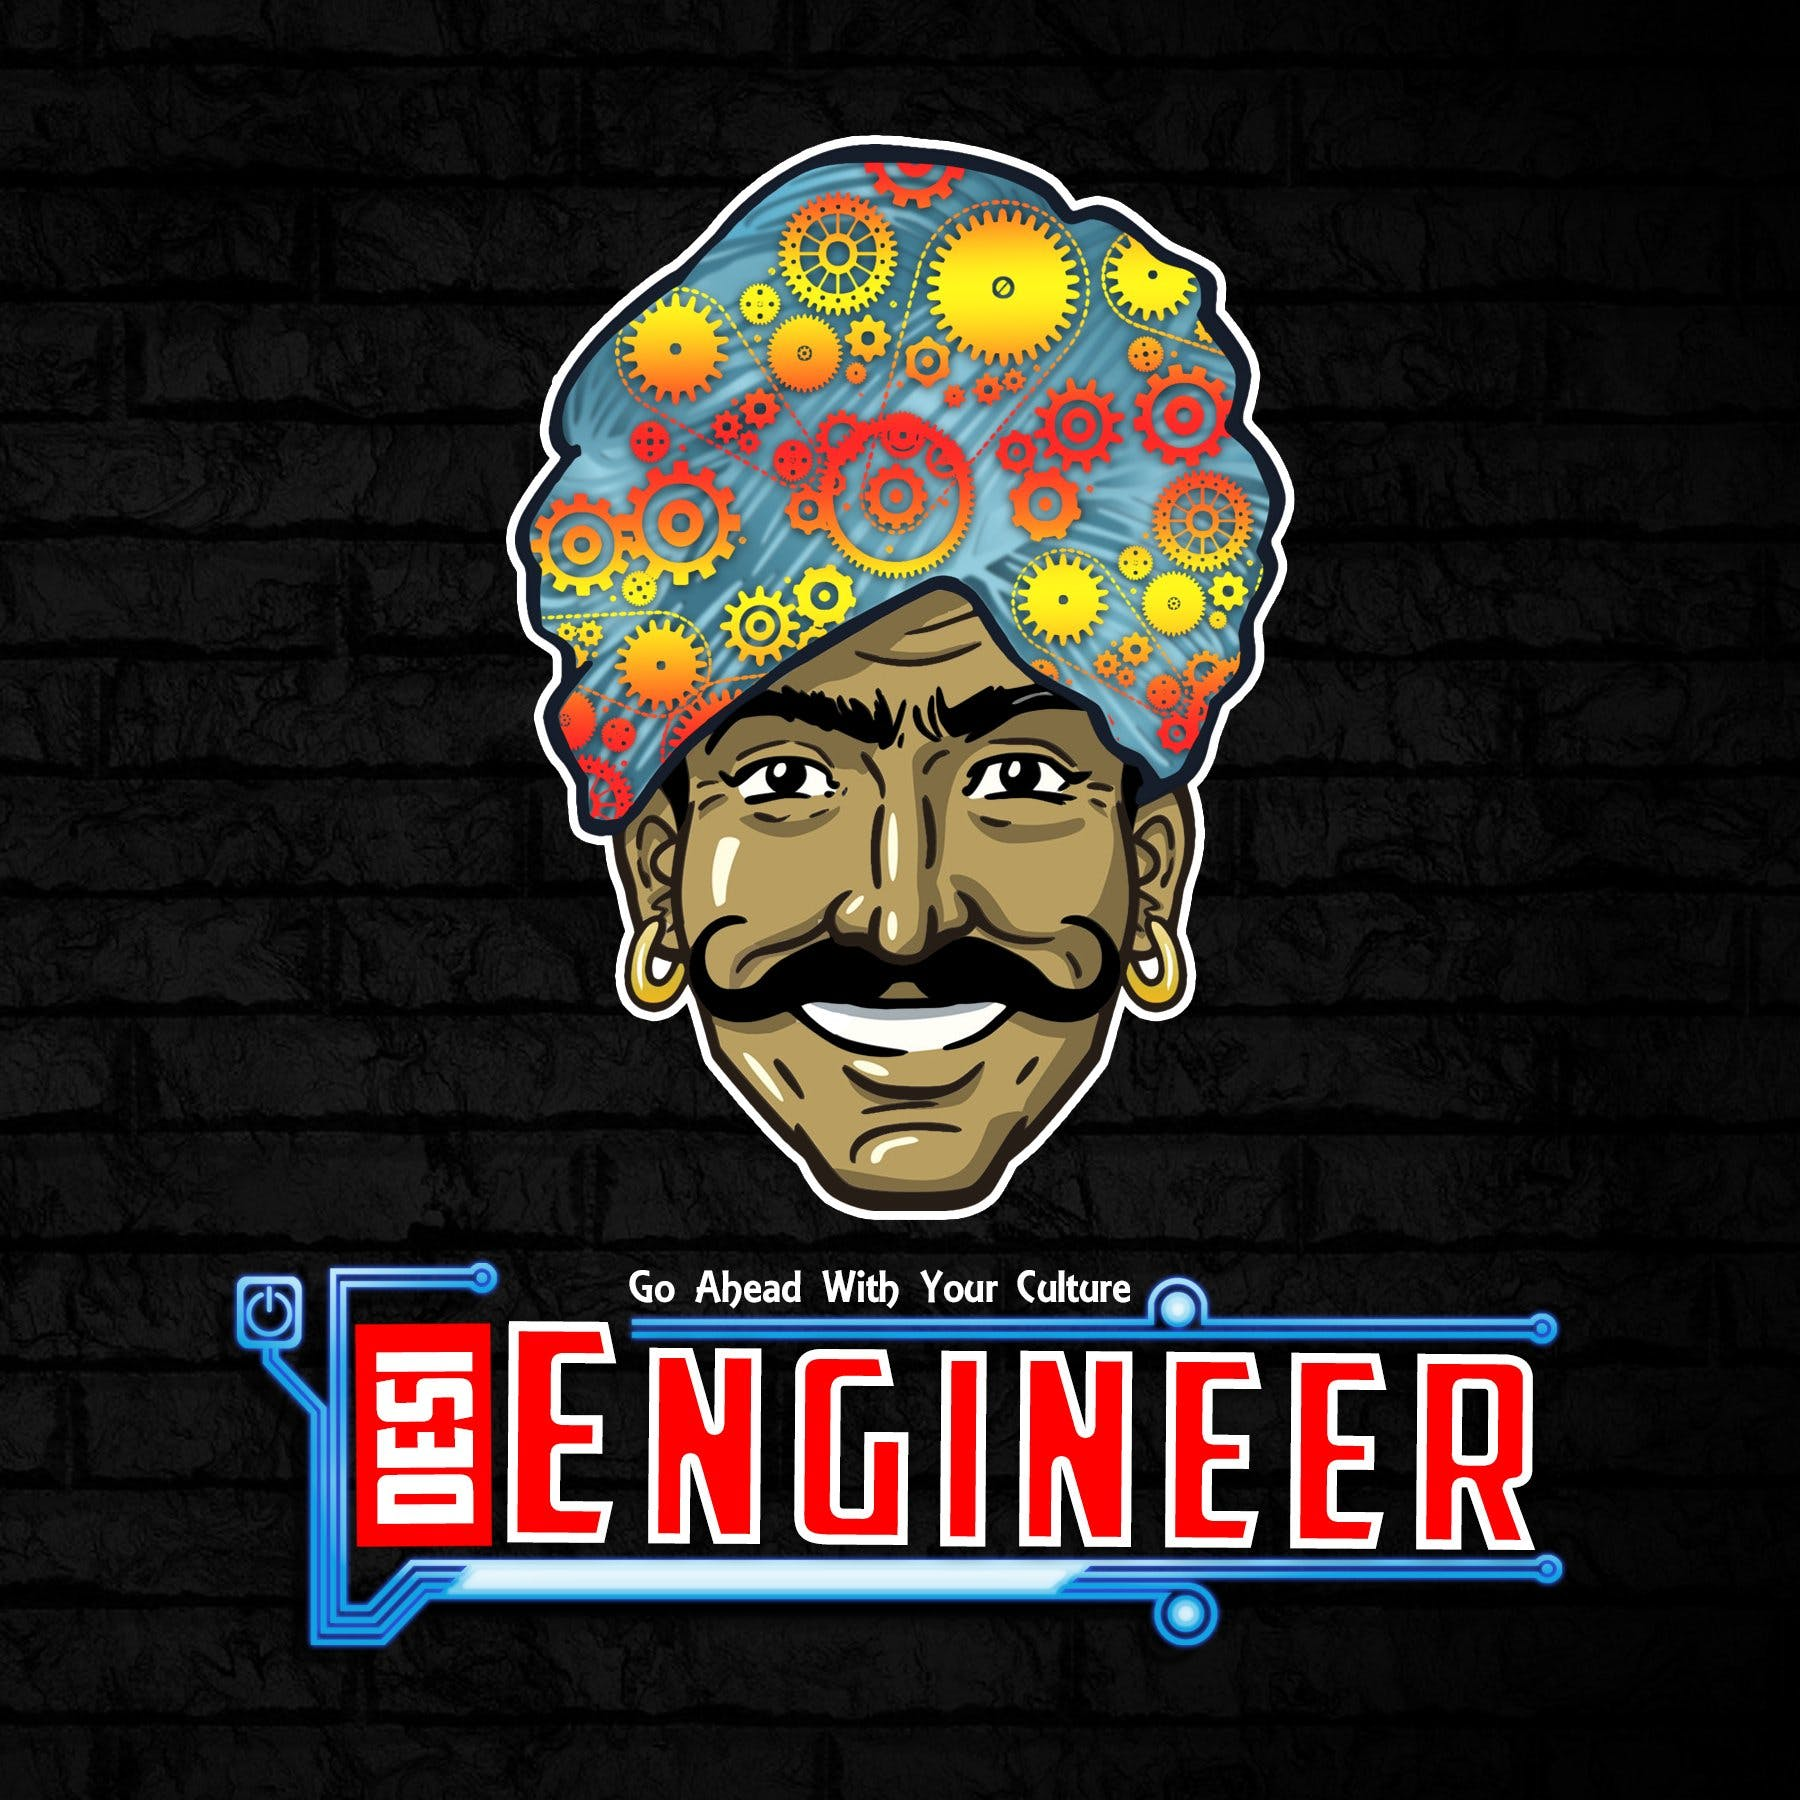 Desi Engineer